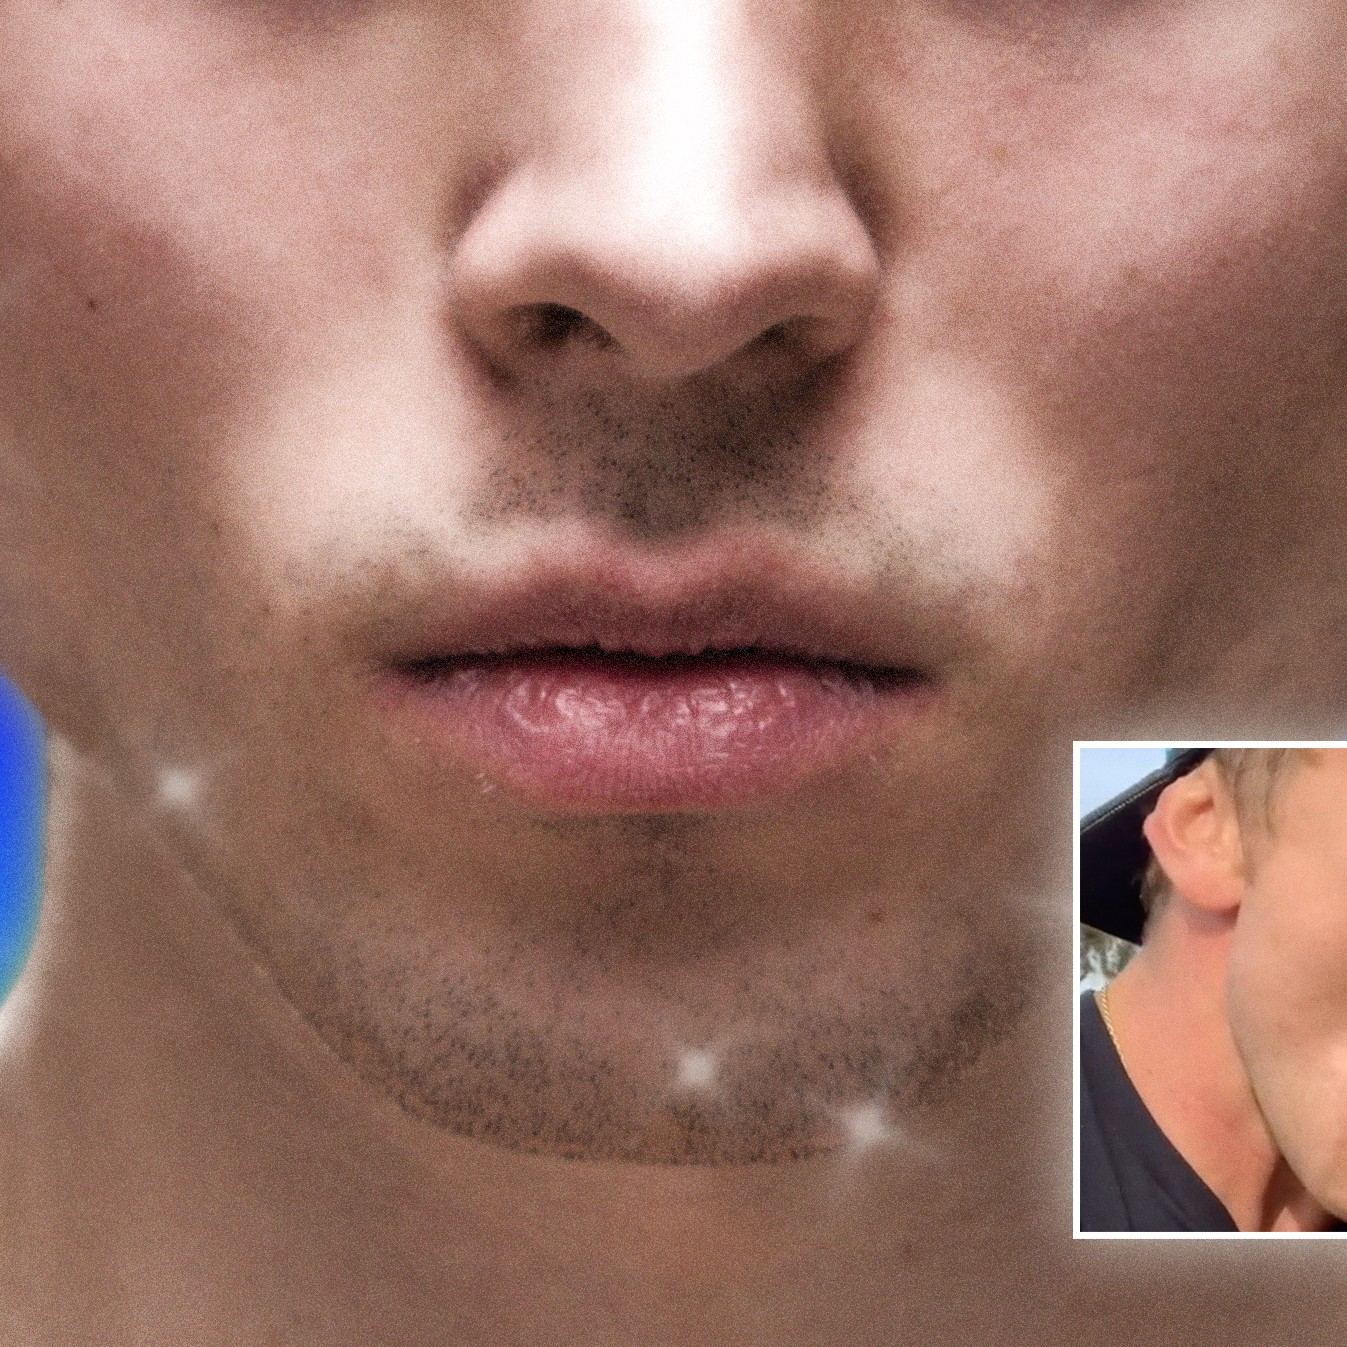 Jawzrsize Is An Incel Inspired Look At Male Beauty Standards